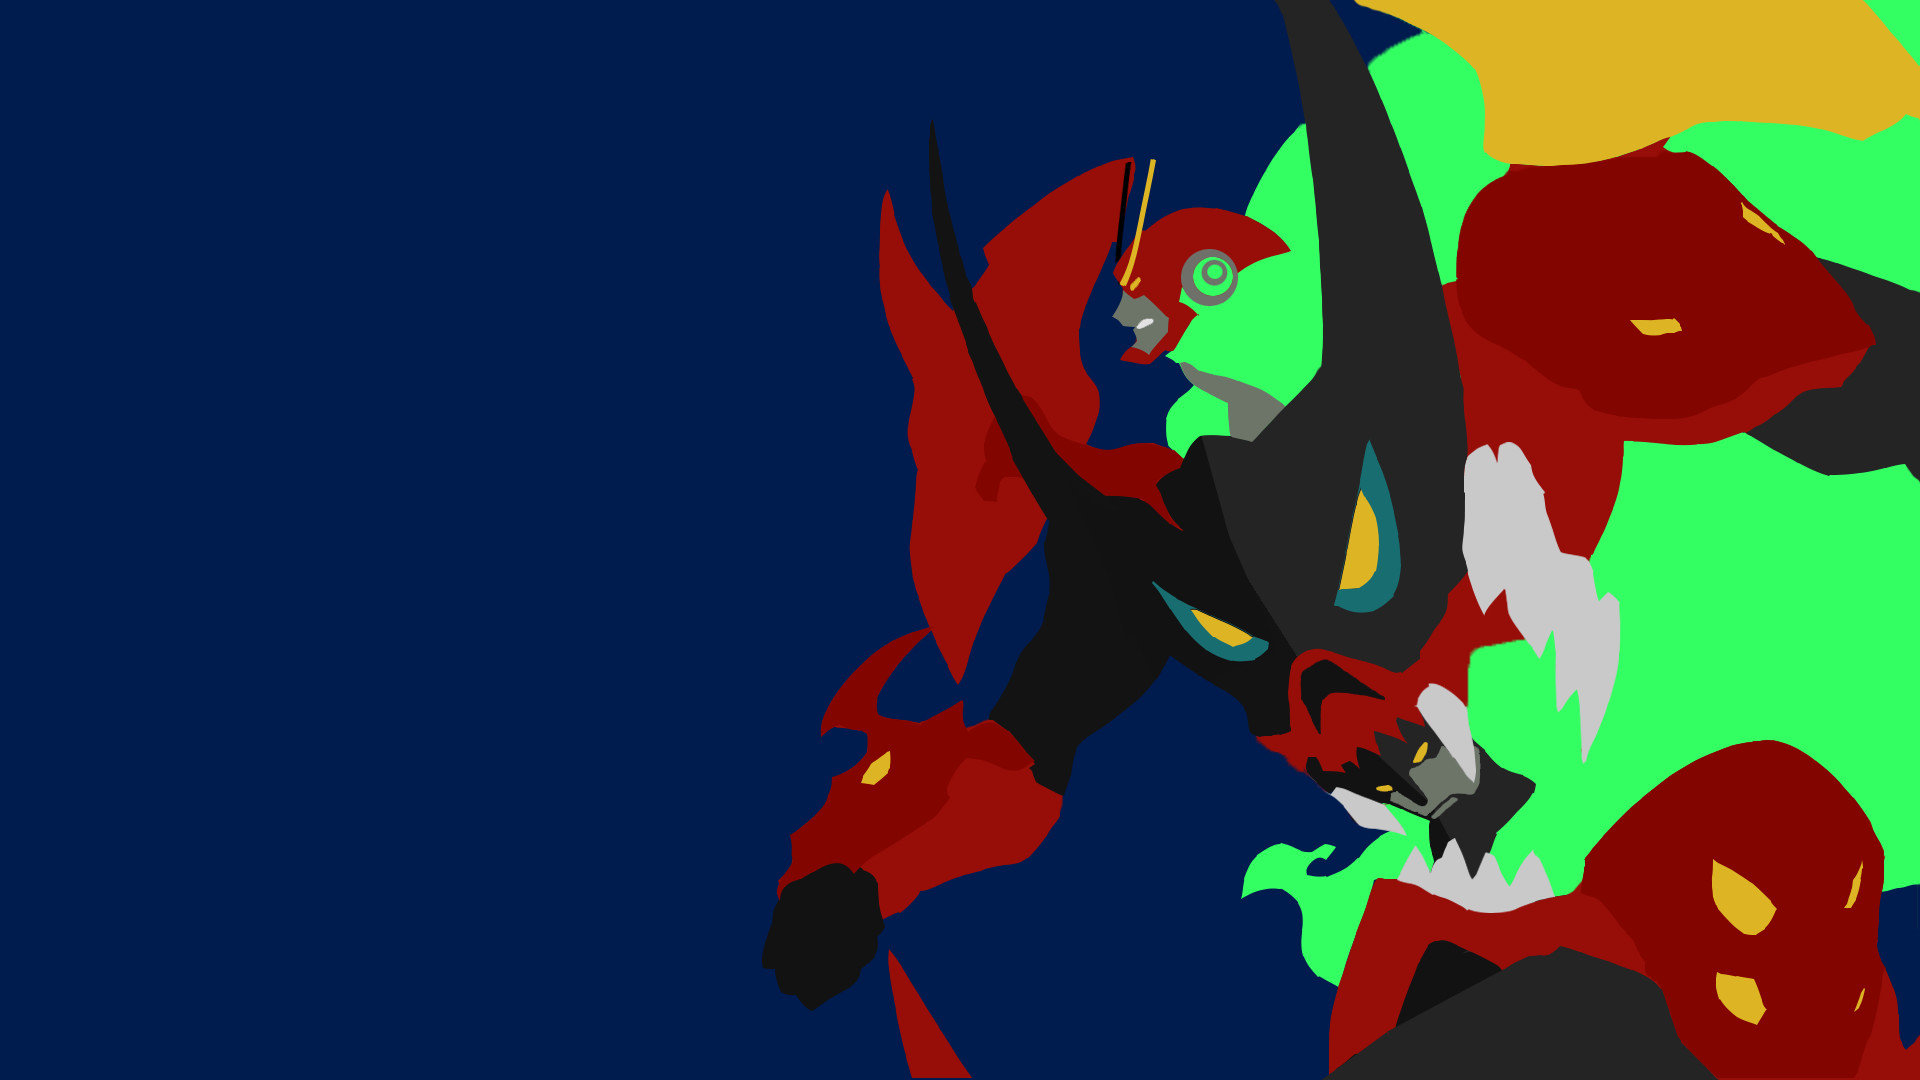 1920x1080 I tried my hand at a minimalist Tengen Toppa Gurren Lagann, what do you  guys think?